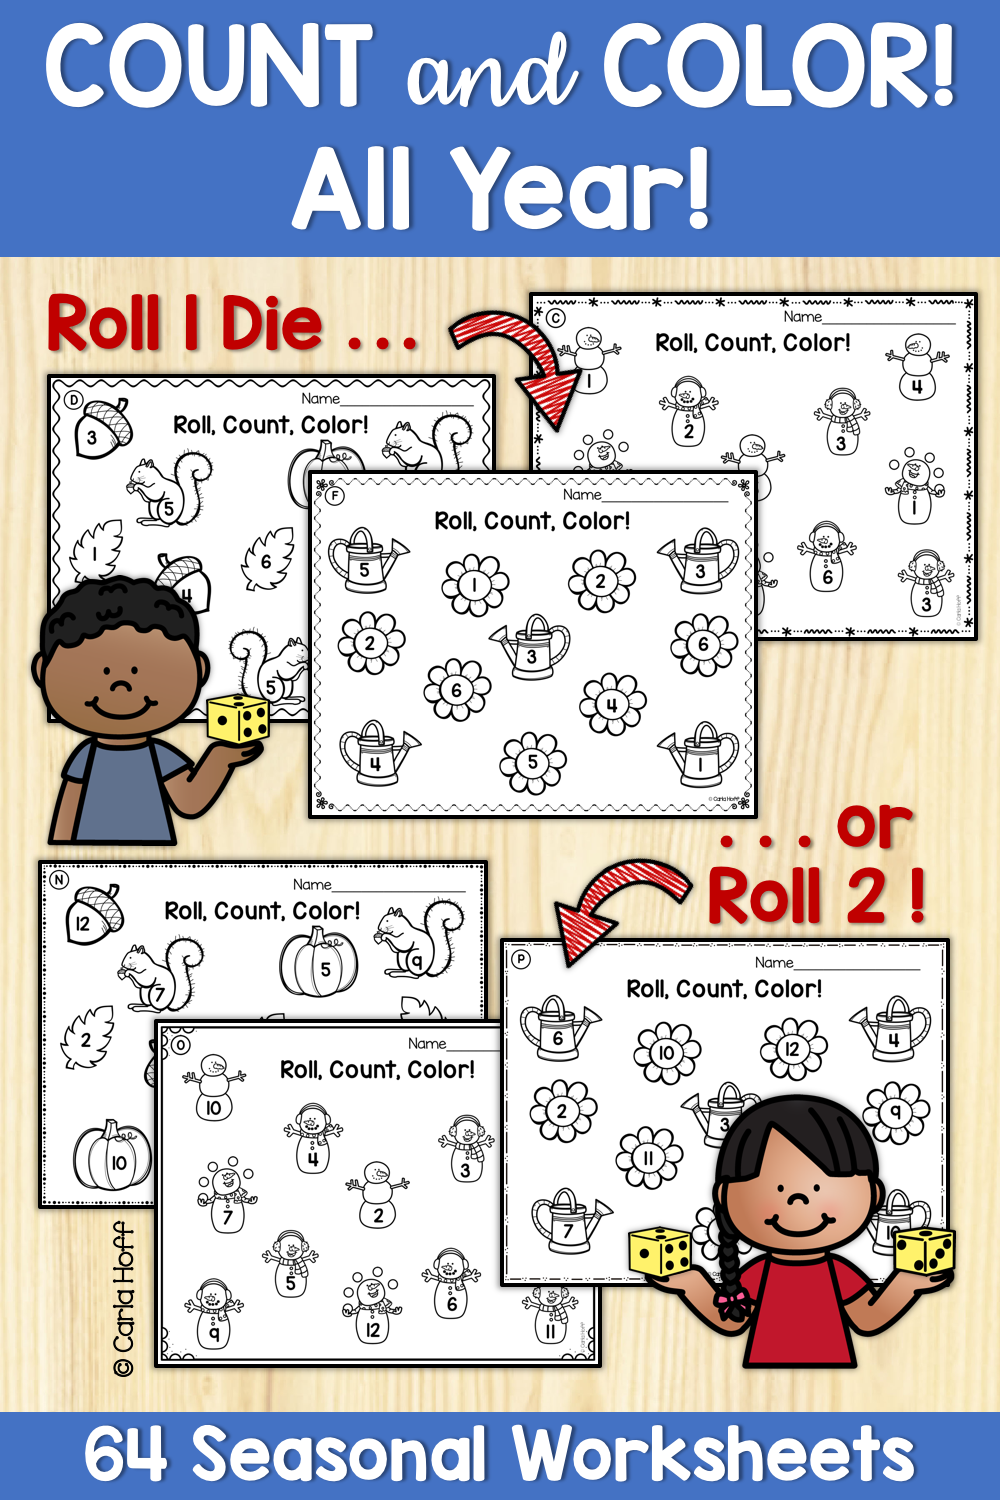 Count And Color Bundle Worksheets For Counting And Adding To 12 Fun Math Activities Fun Math Worksheets